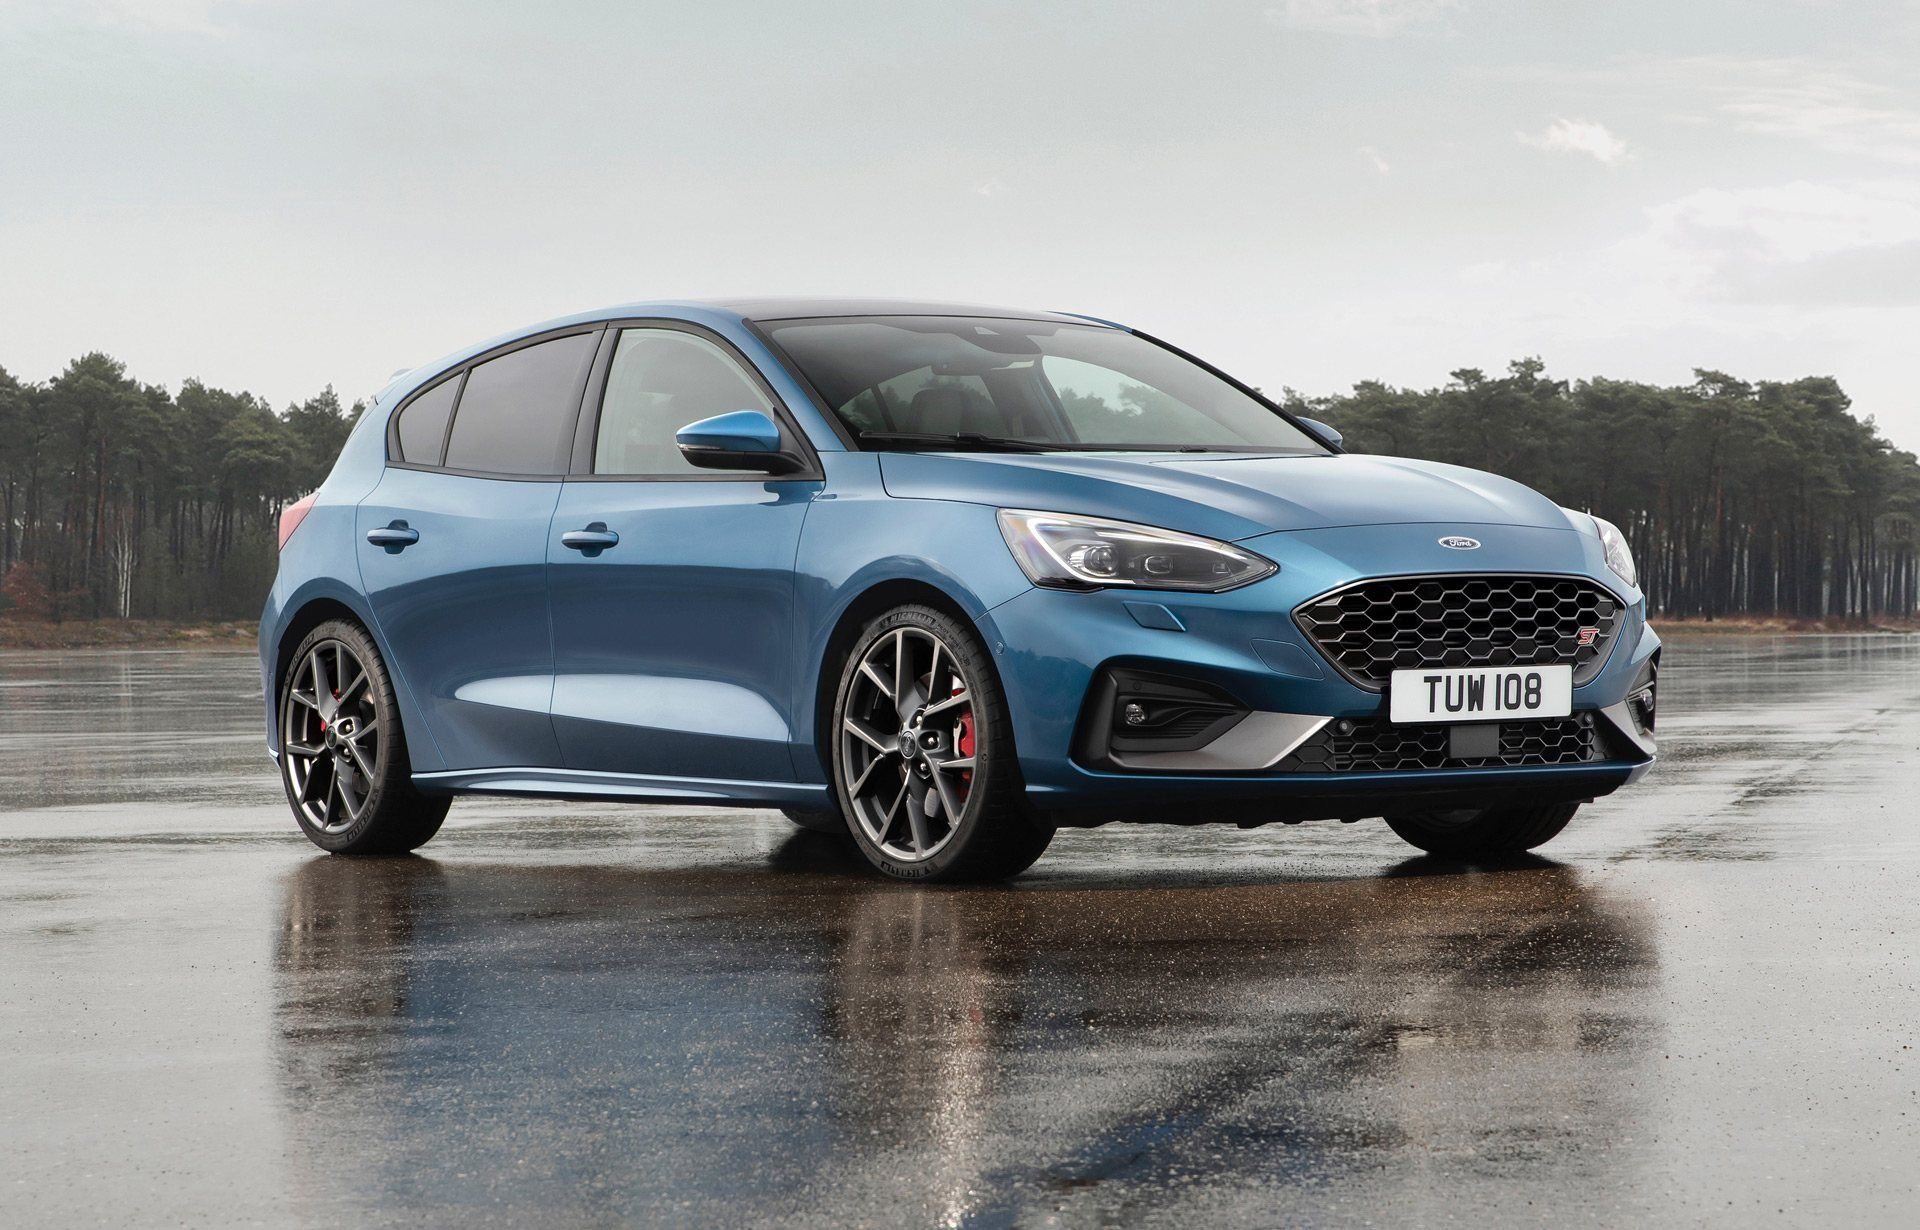 2021 Audi Q6 Spy Shoot In 2020 Ford Focus St Ford Focus Ford Focus Rs